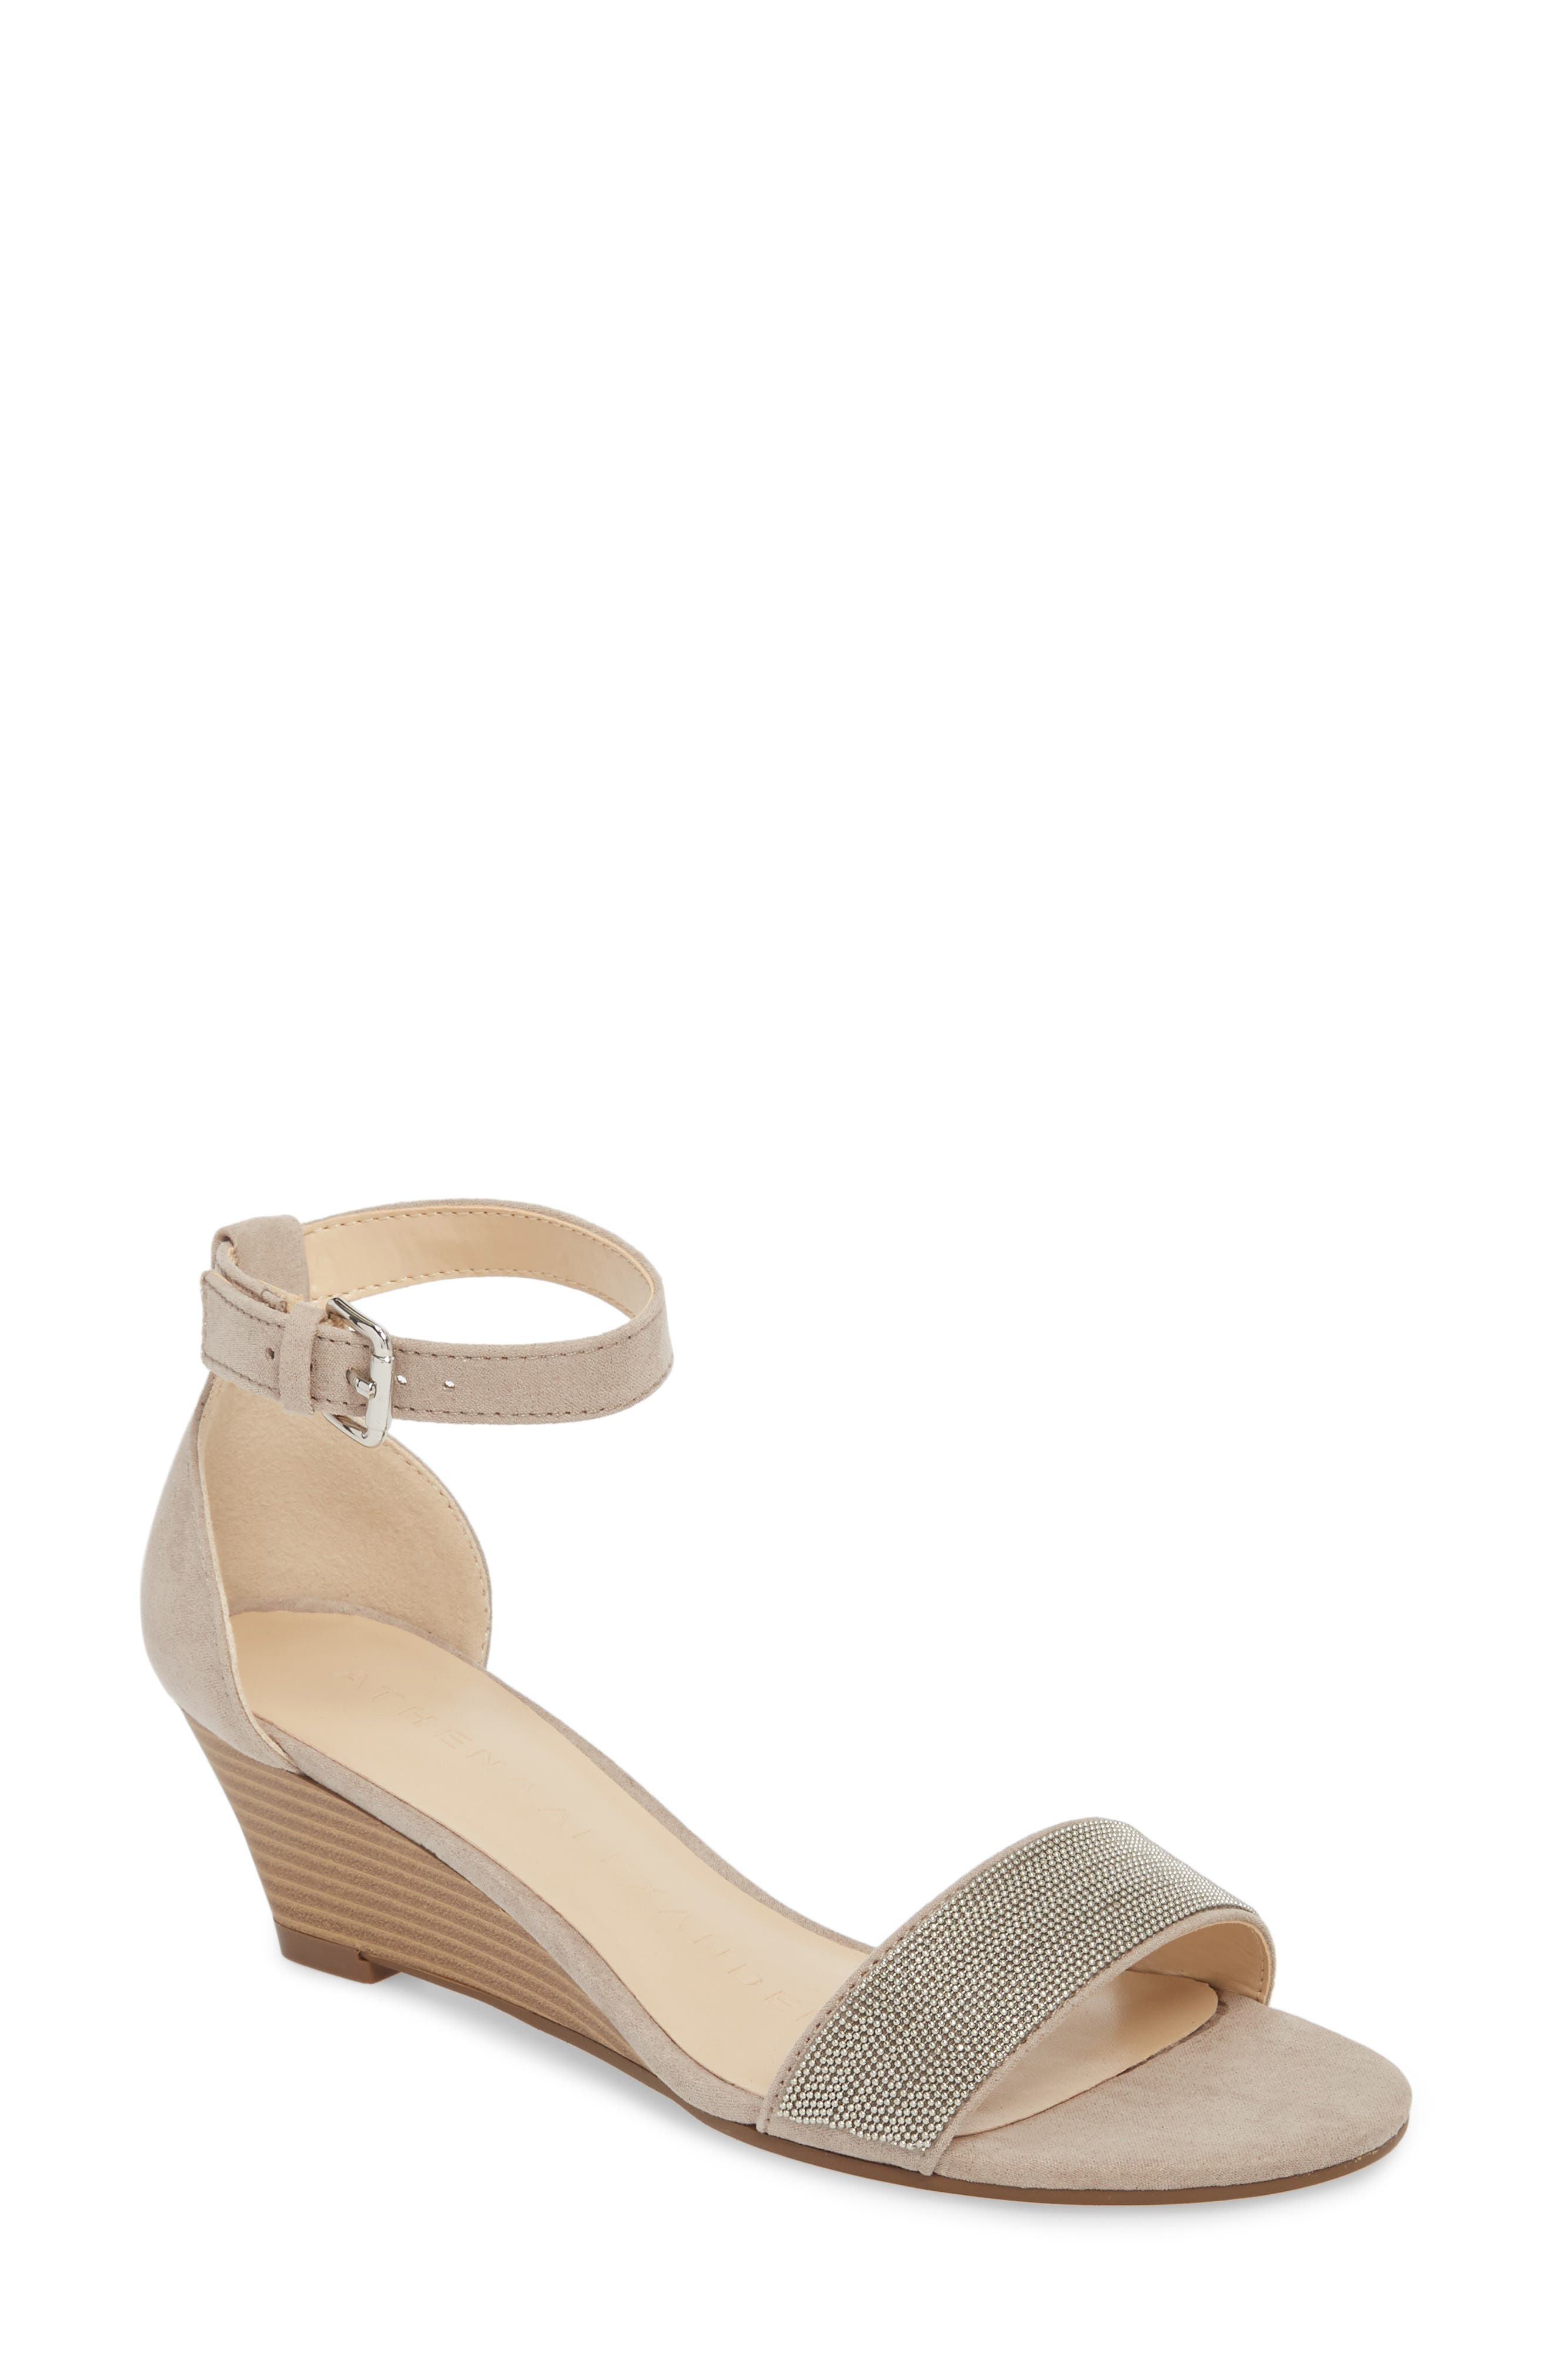 Main Image - Athena Alexander Enfield Ankle Strap Wedge Sandal (Women)